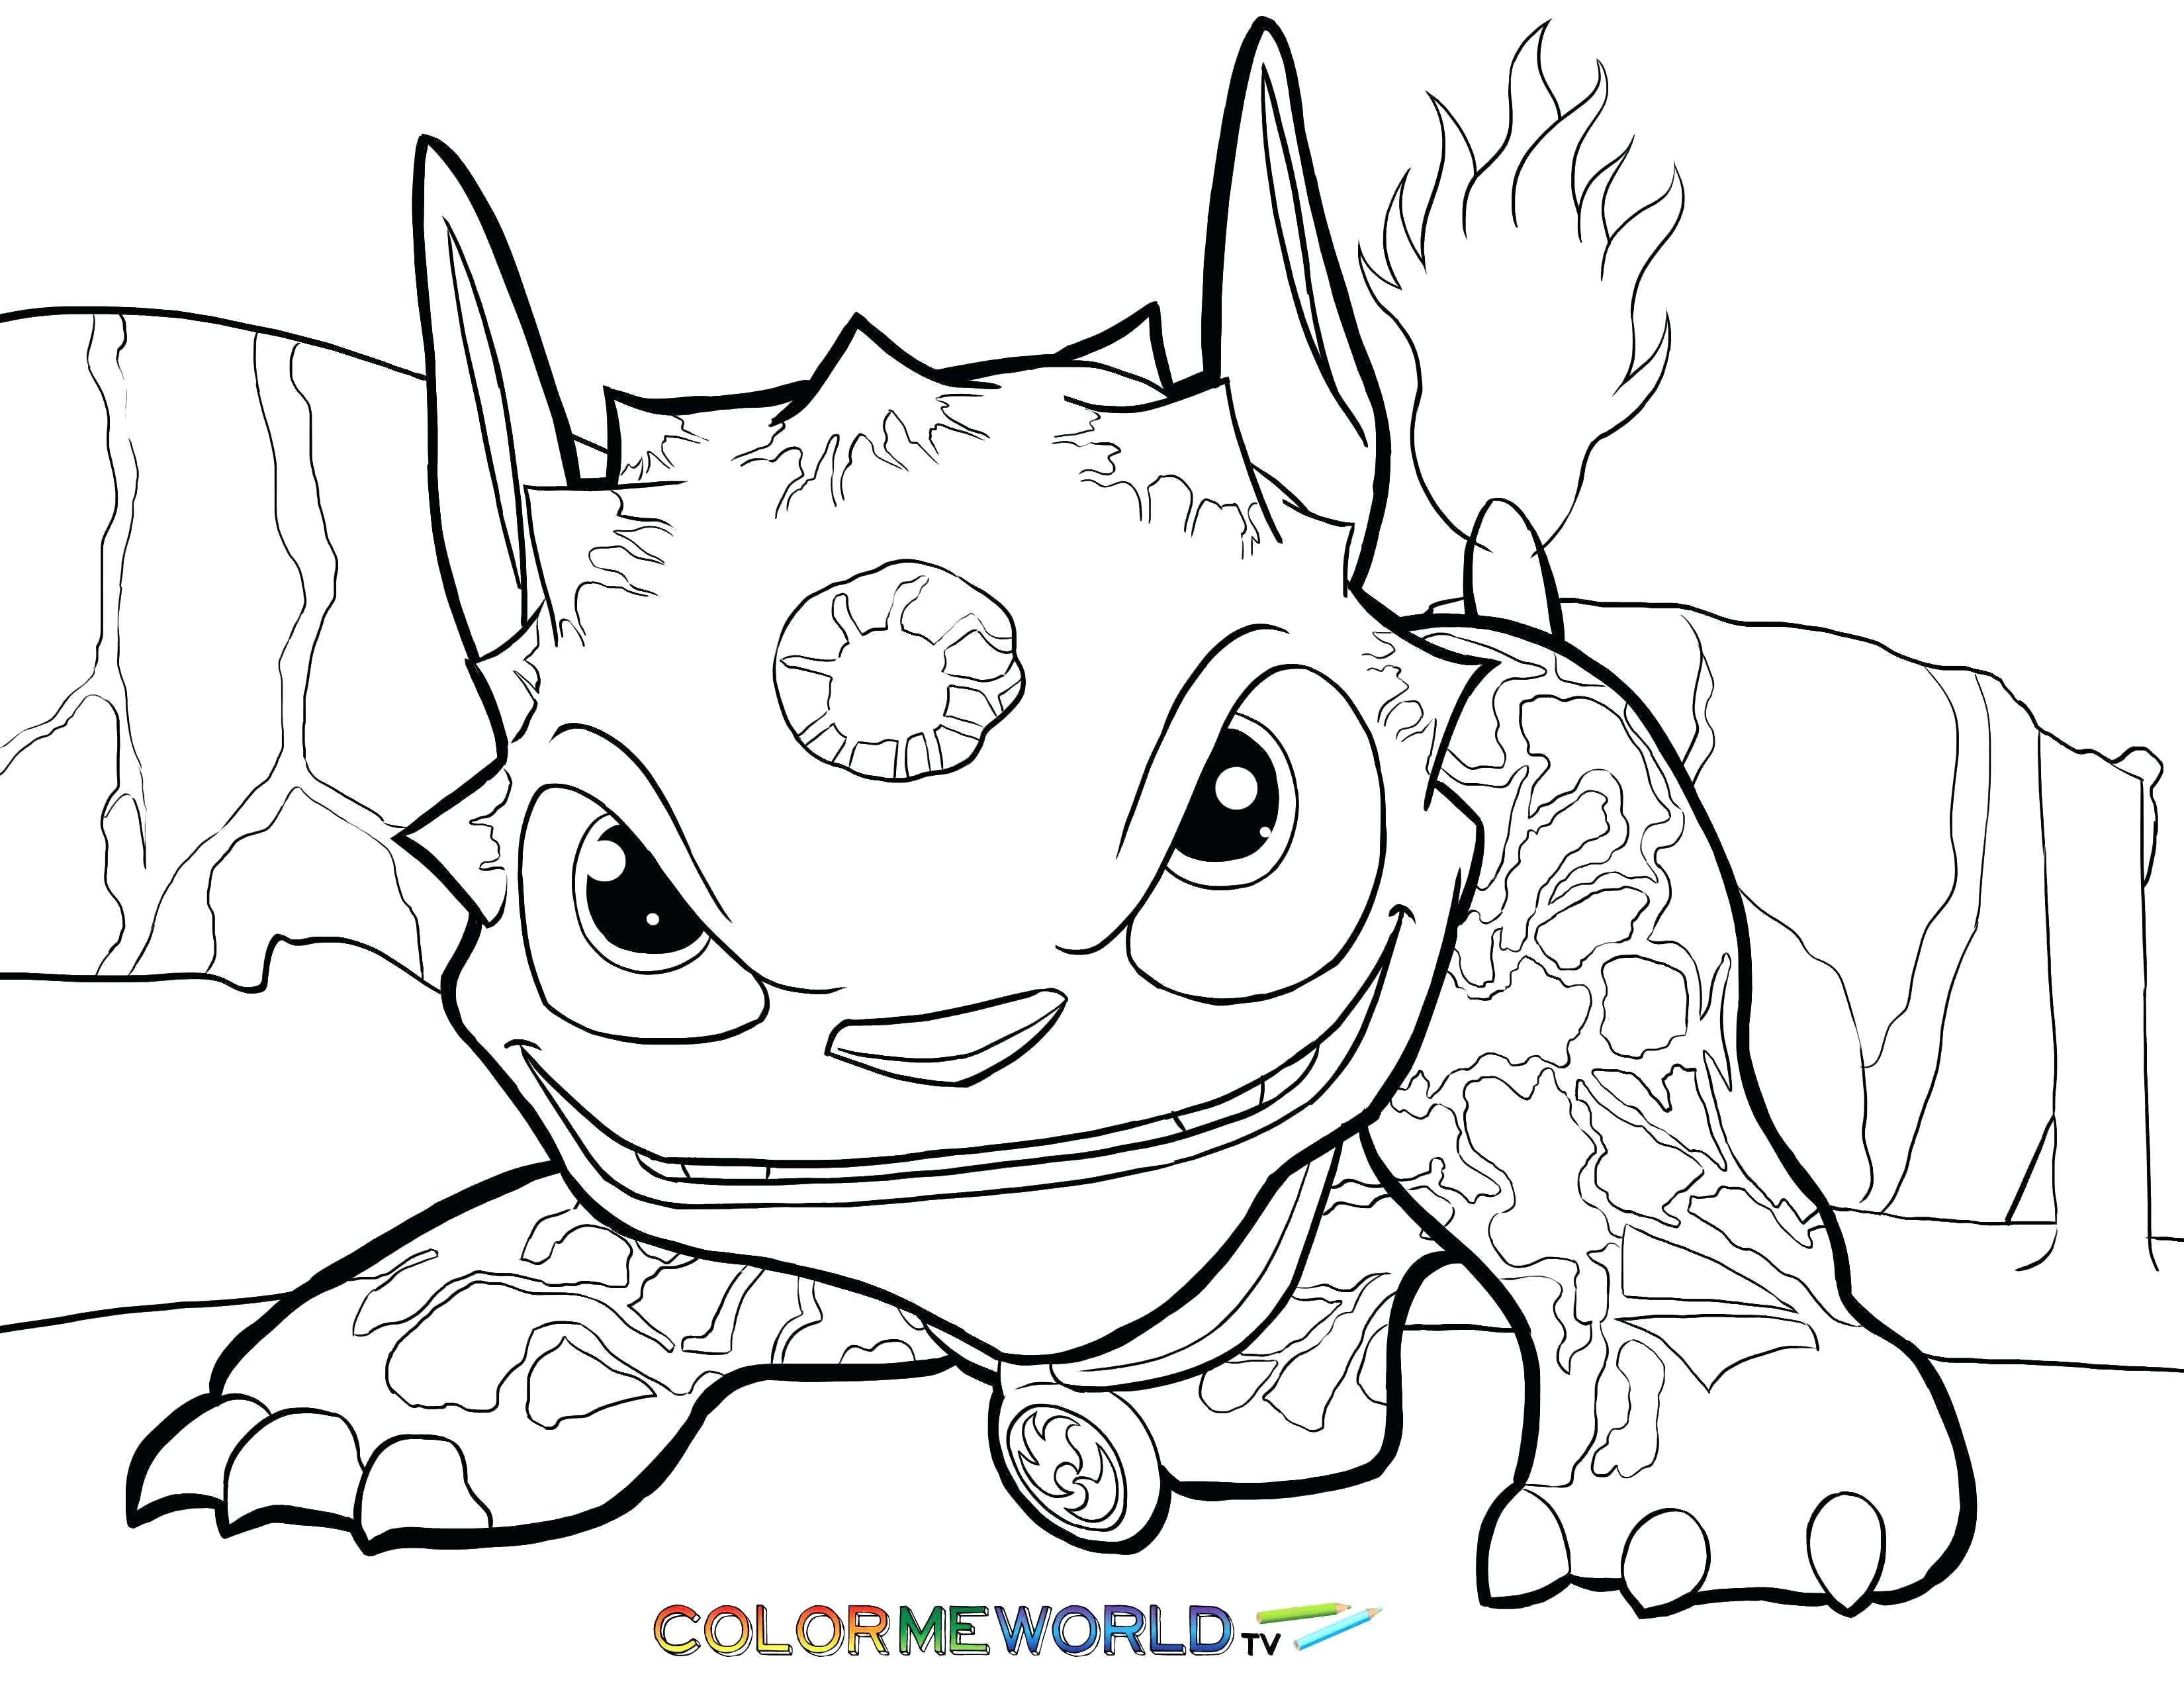 3300x2550 Crayola Coloring Pages For Adults Epic Kids Printable Your